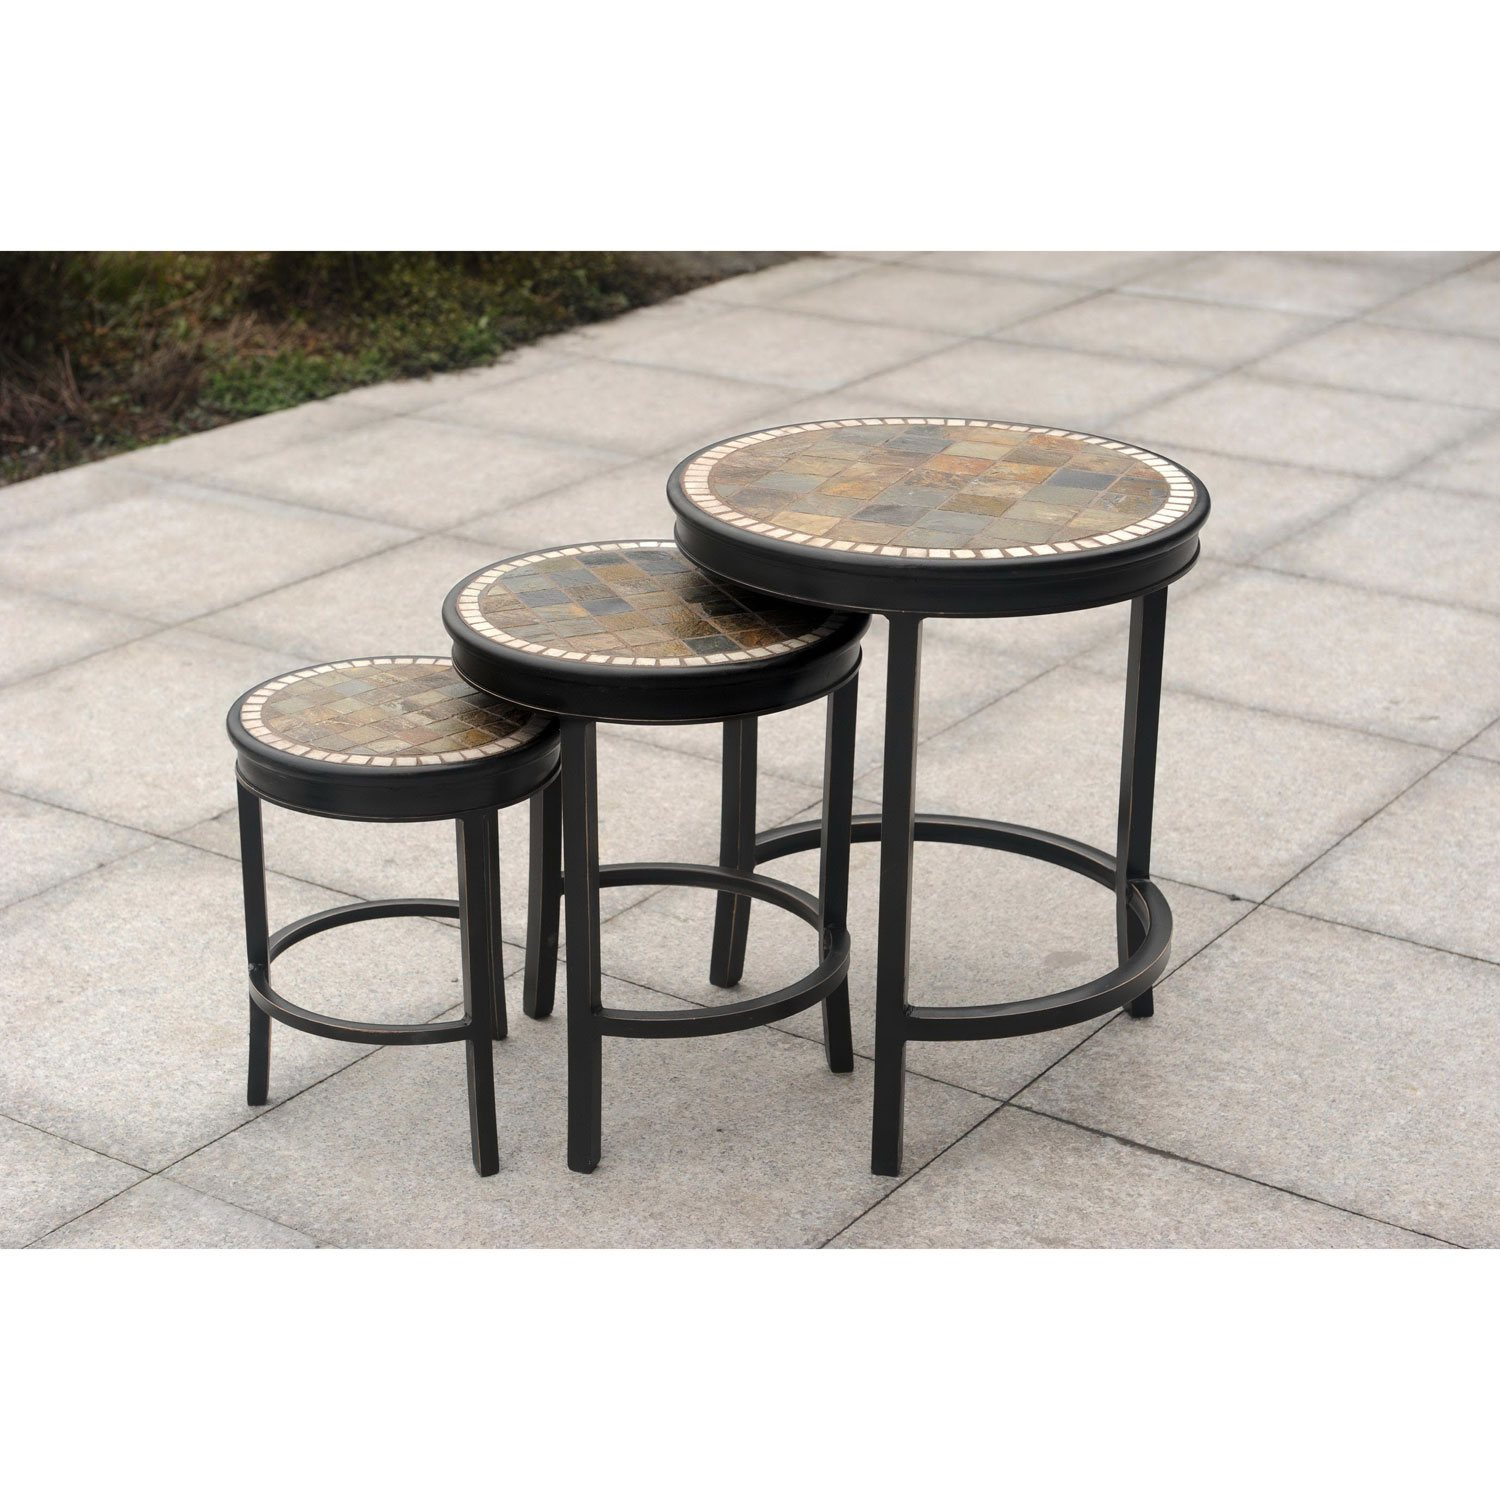 Lovely Patio Accent Table Patio Design 392